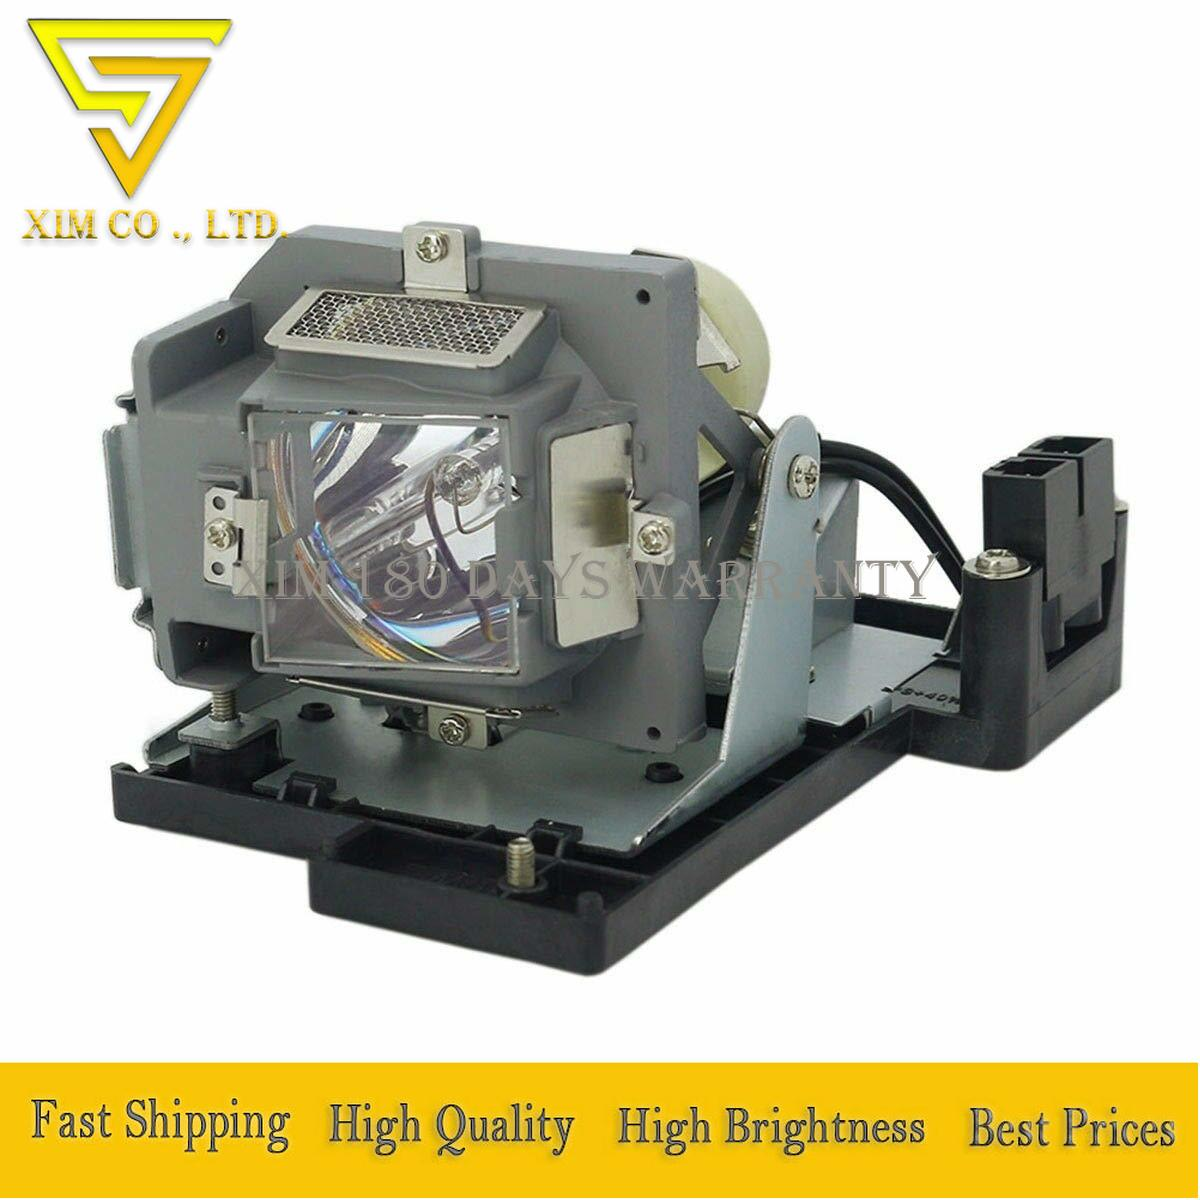 5J.J0705.001 High Quality Projector Lamp Bulb With Housing Replacement For BENQ HP3325 MP670 W600 W600+ Projectors